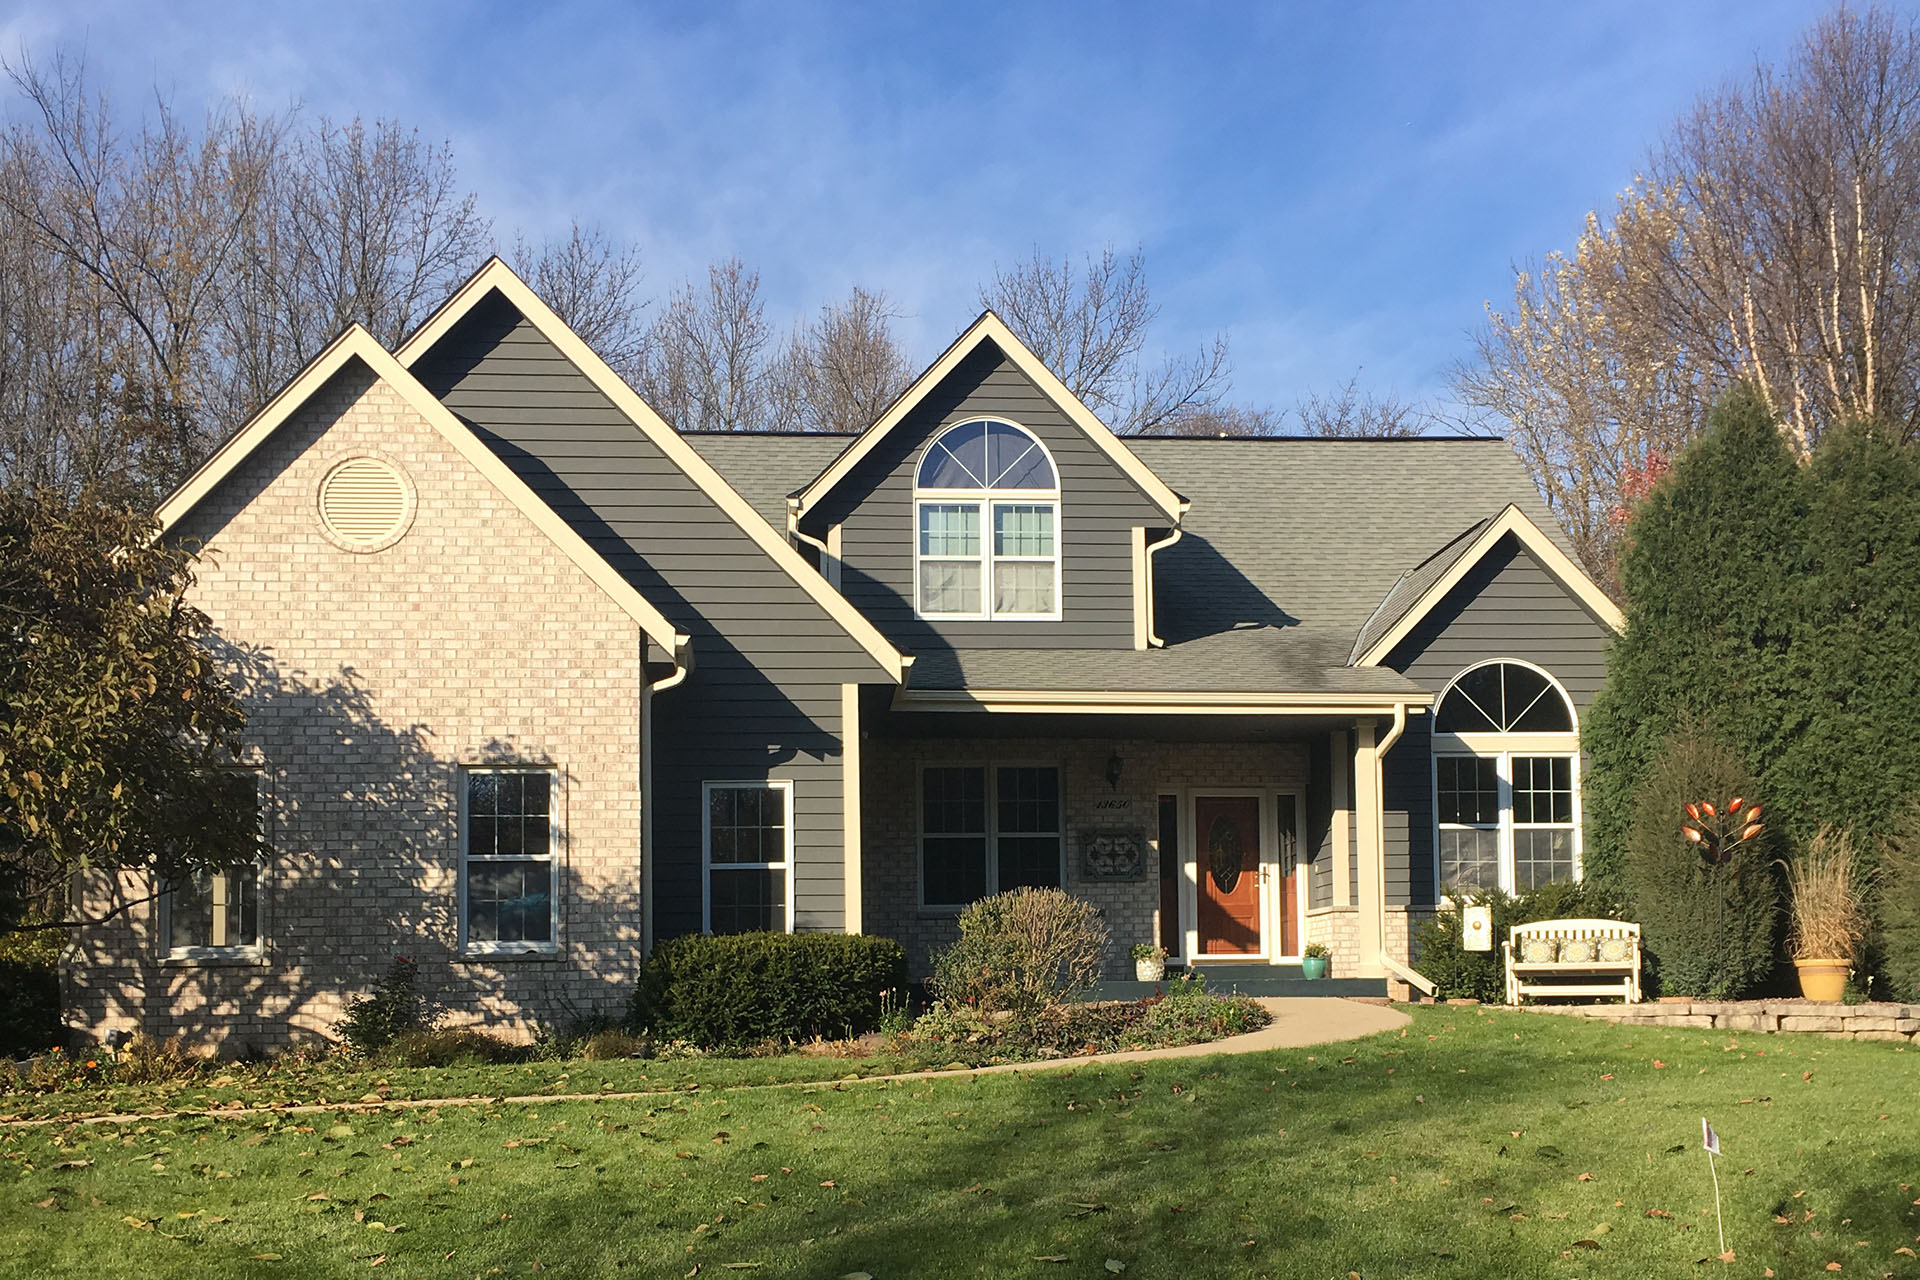 residential painters near me, exterior painting